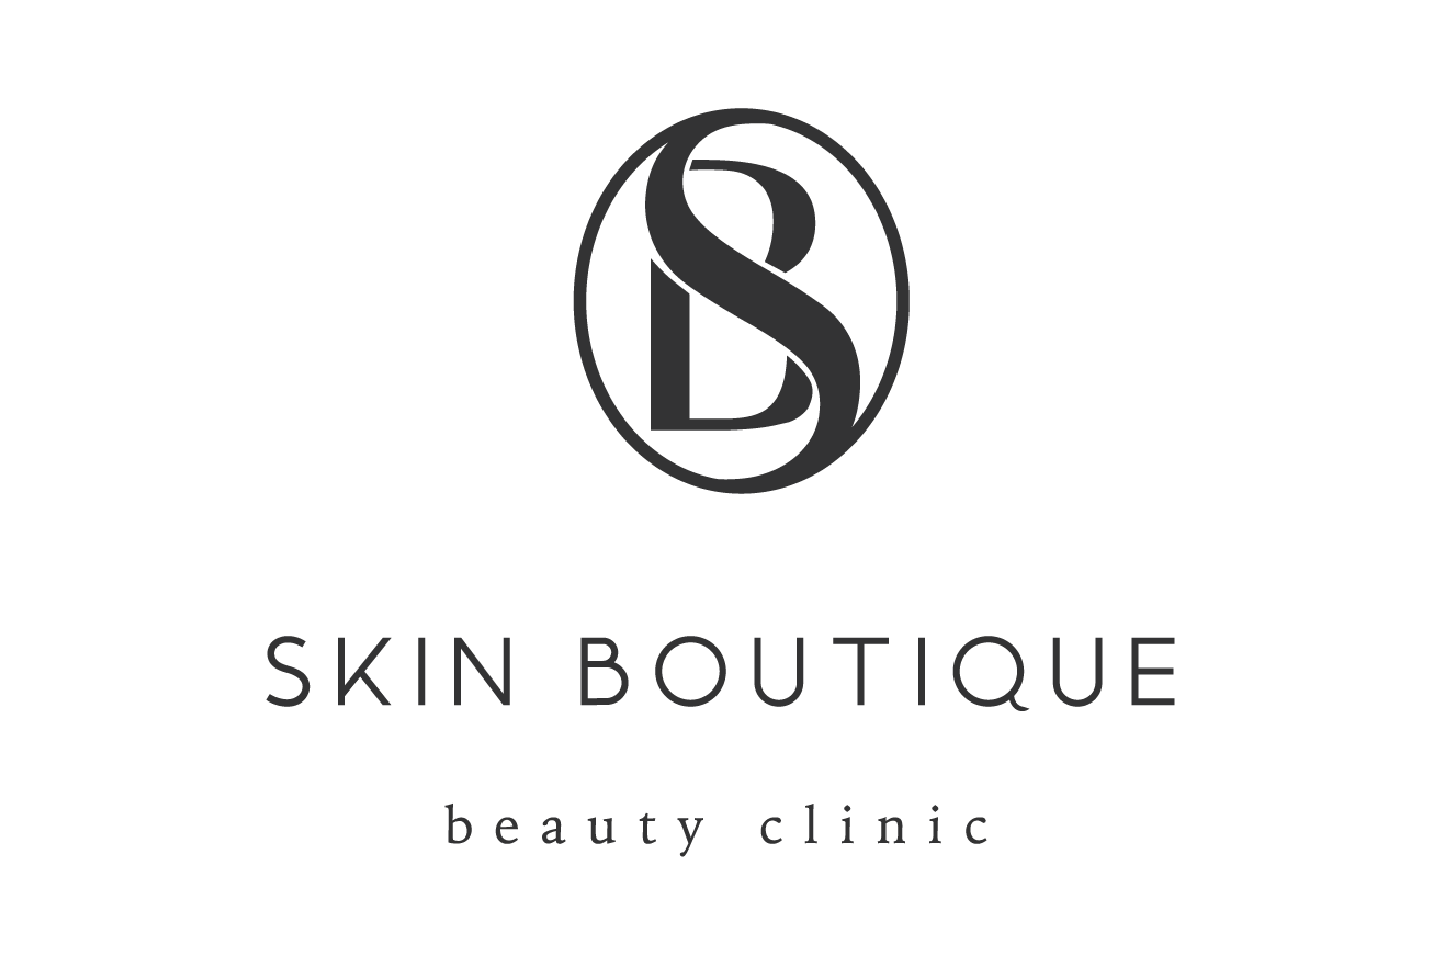 Skin Boutique Beauty Clinic